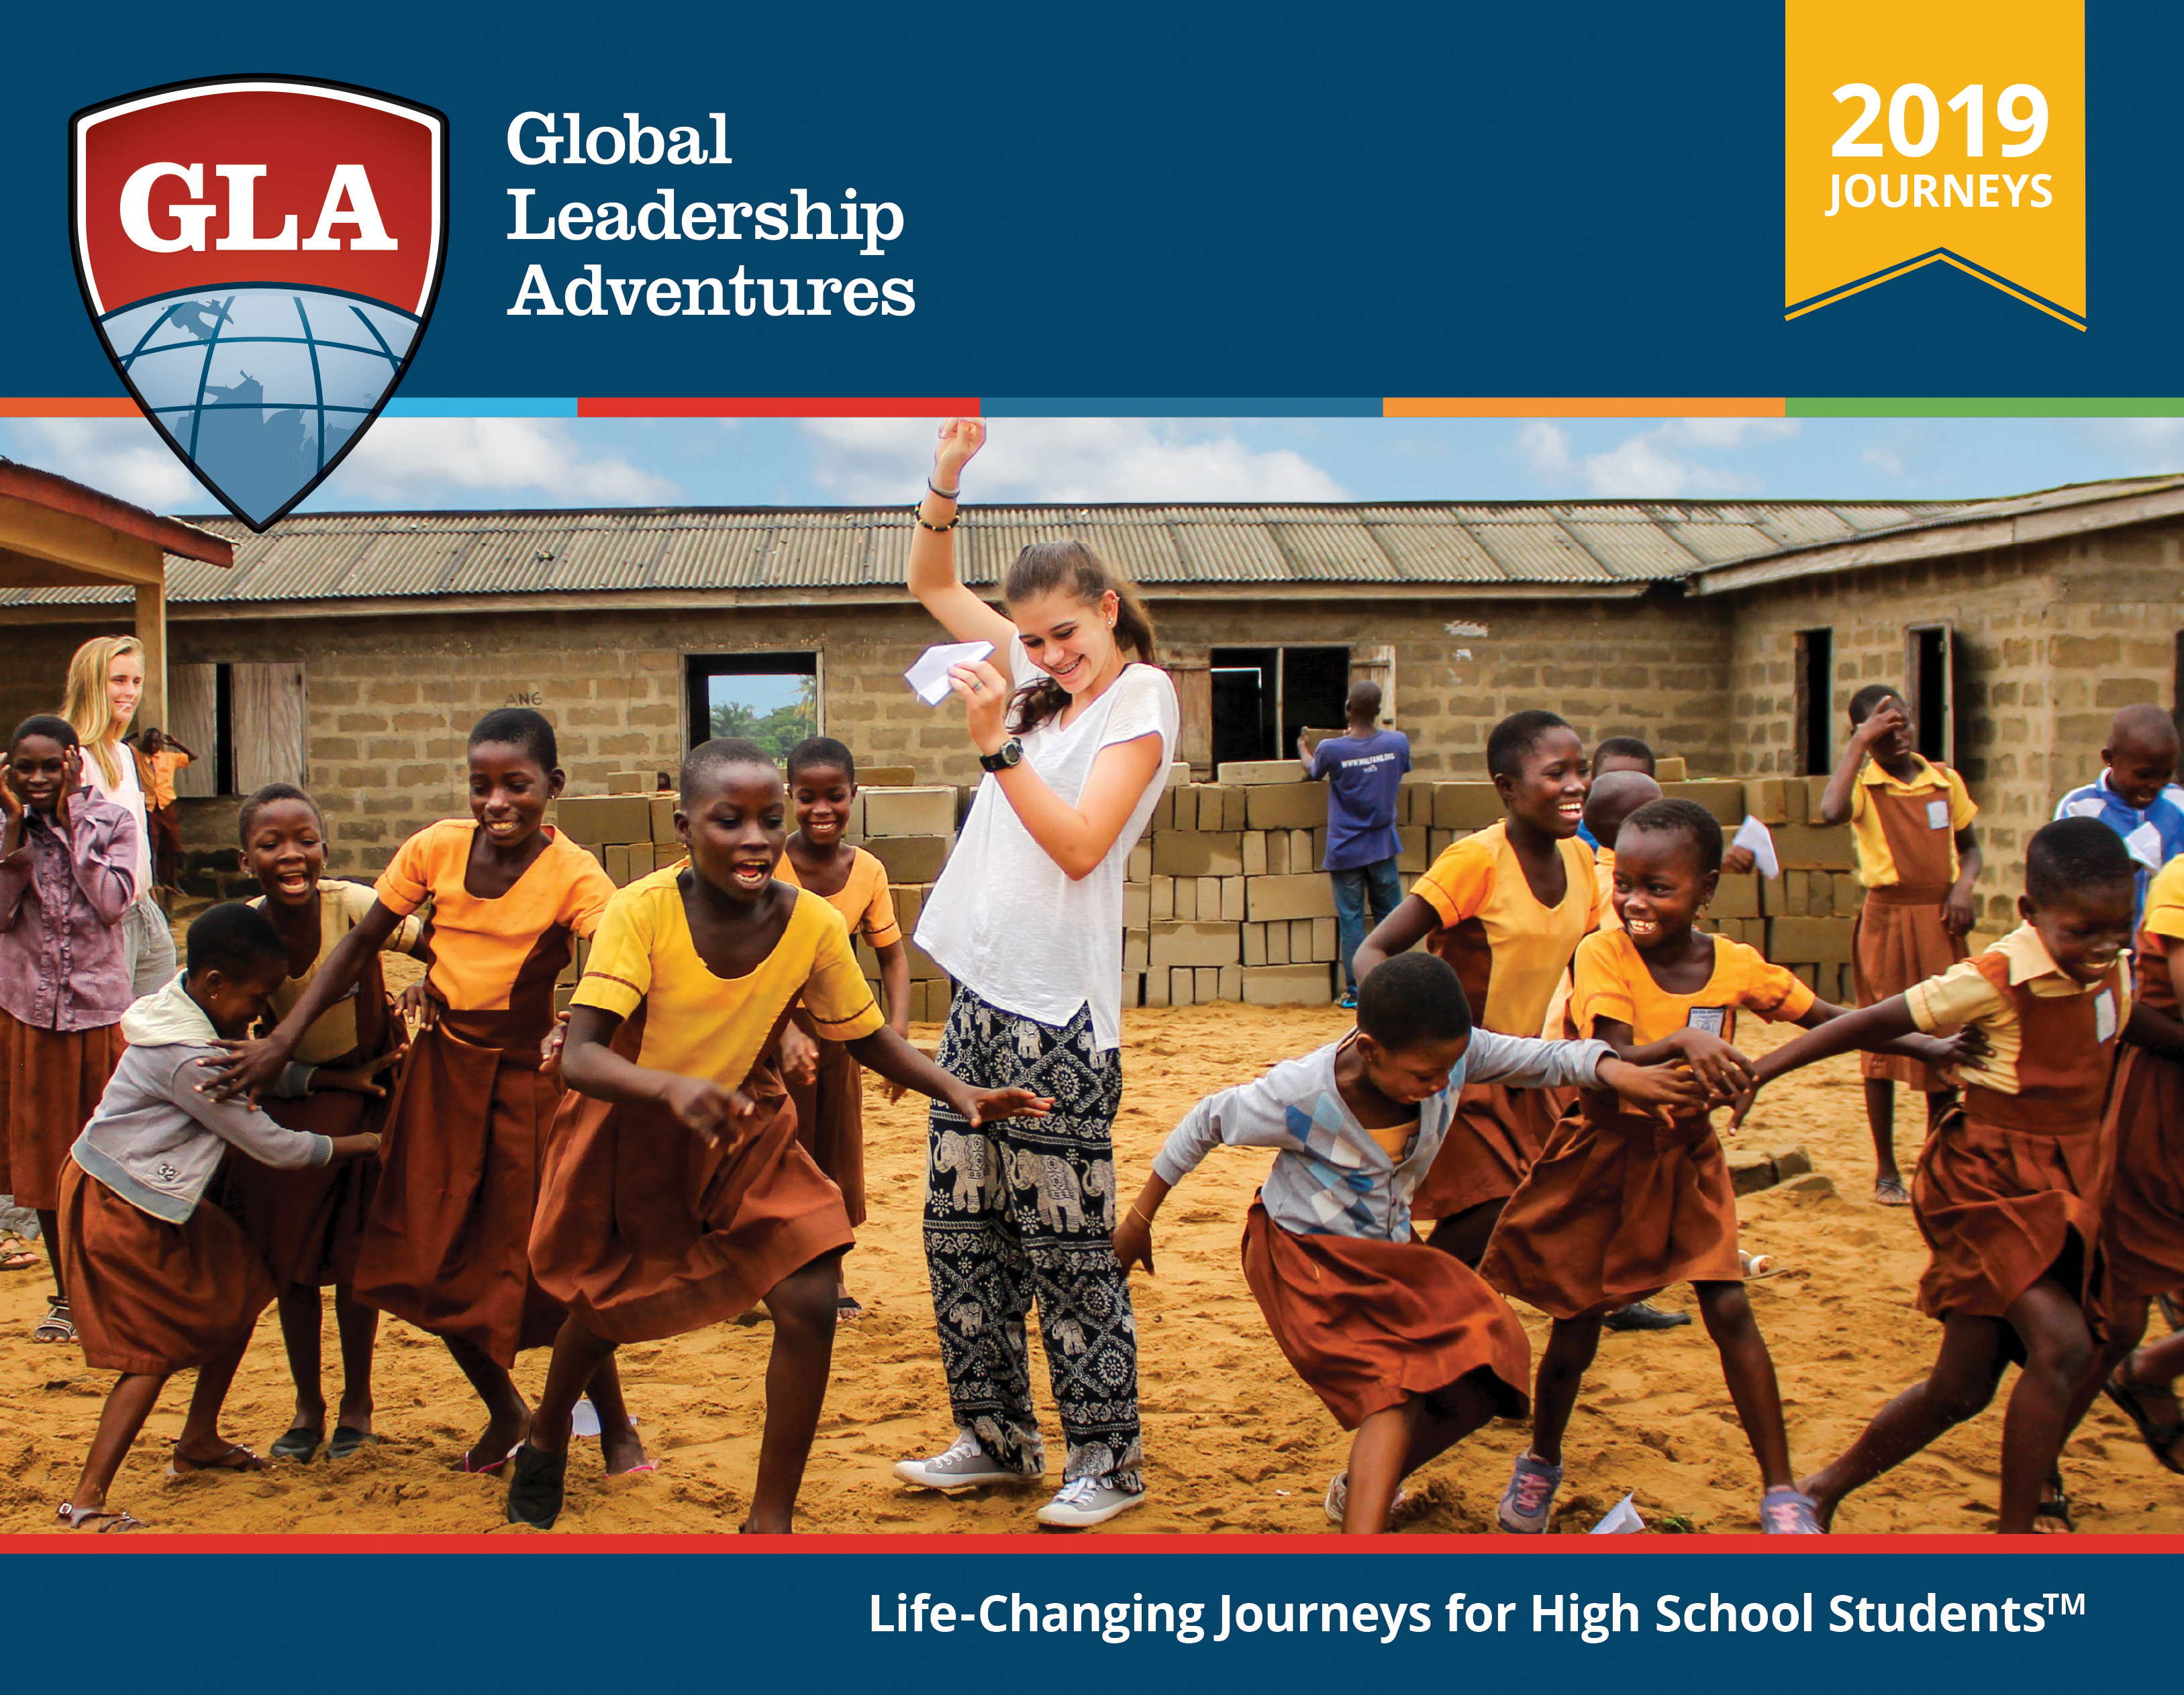 Catalog with Peace Corps inspired trips for teens from GLA